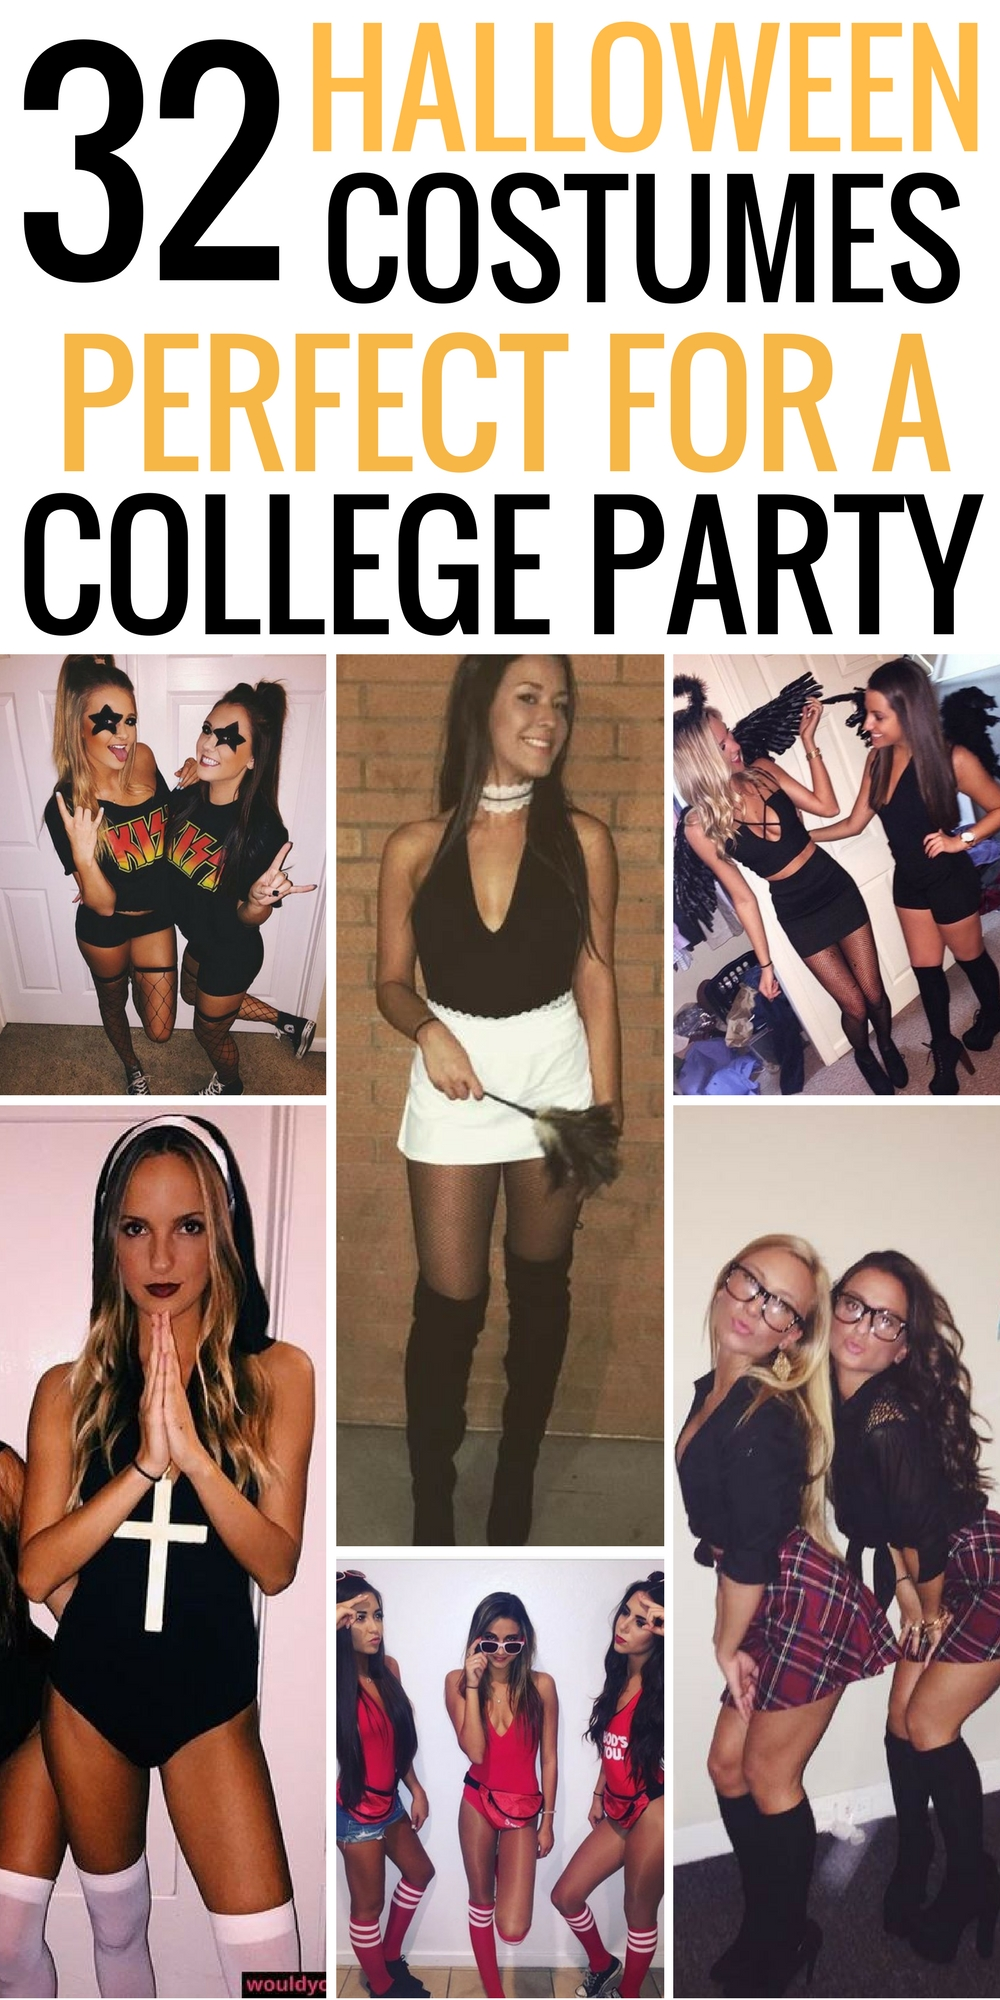 10 Pretty Halloween Costume Ideas For College 32 easy costumes to copy that are perfect for the college halloween 2021